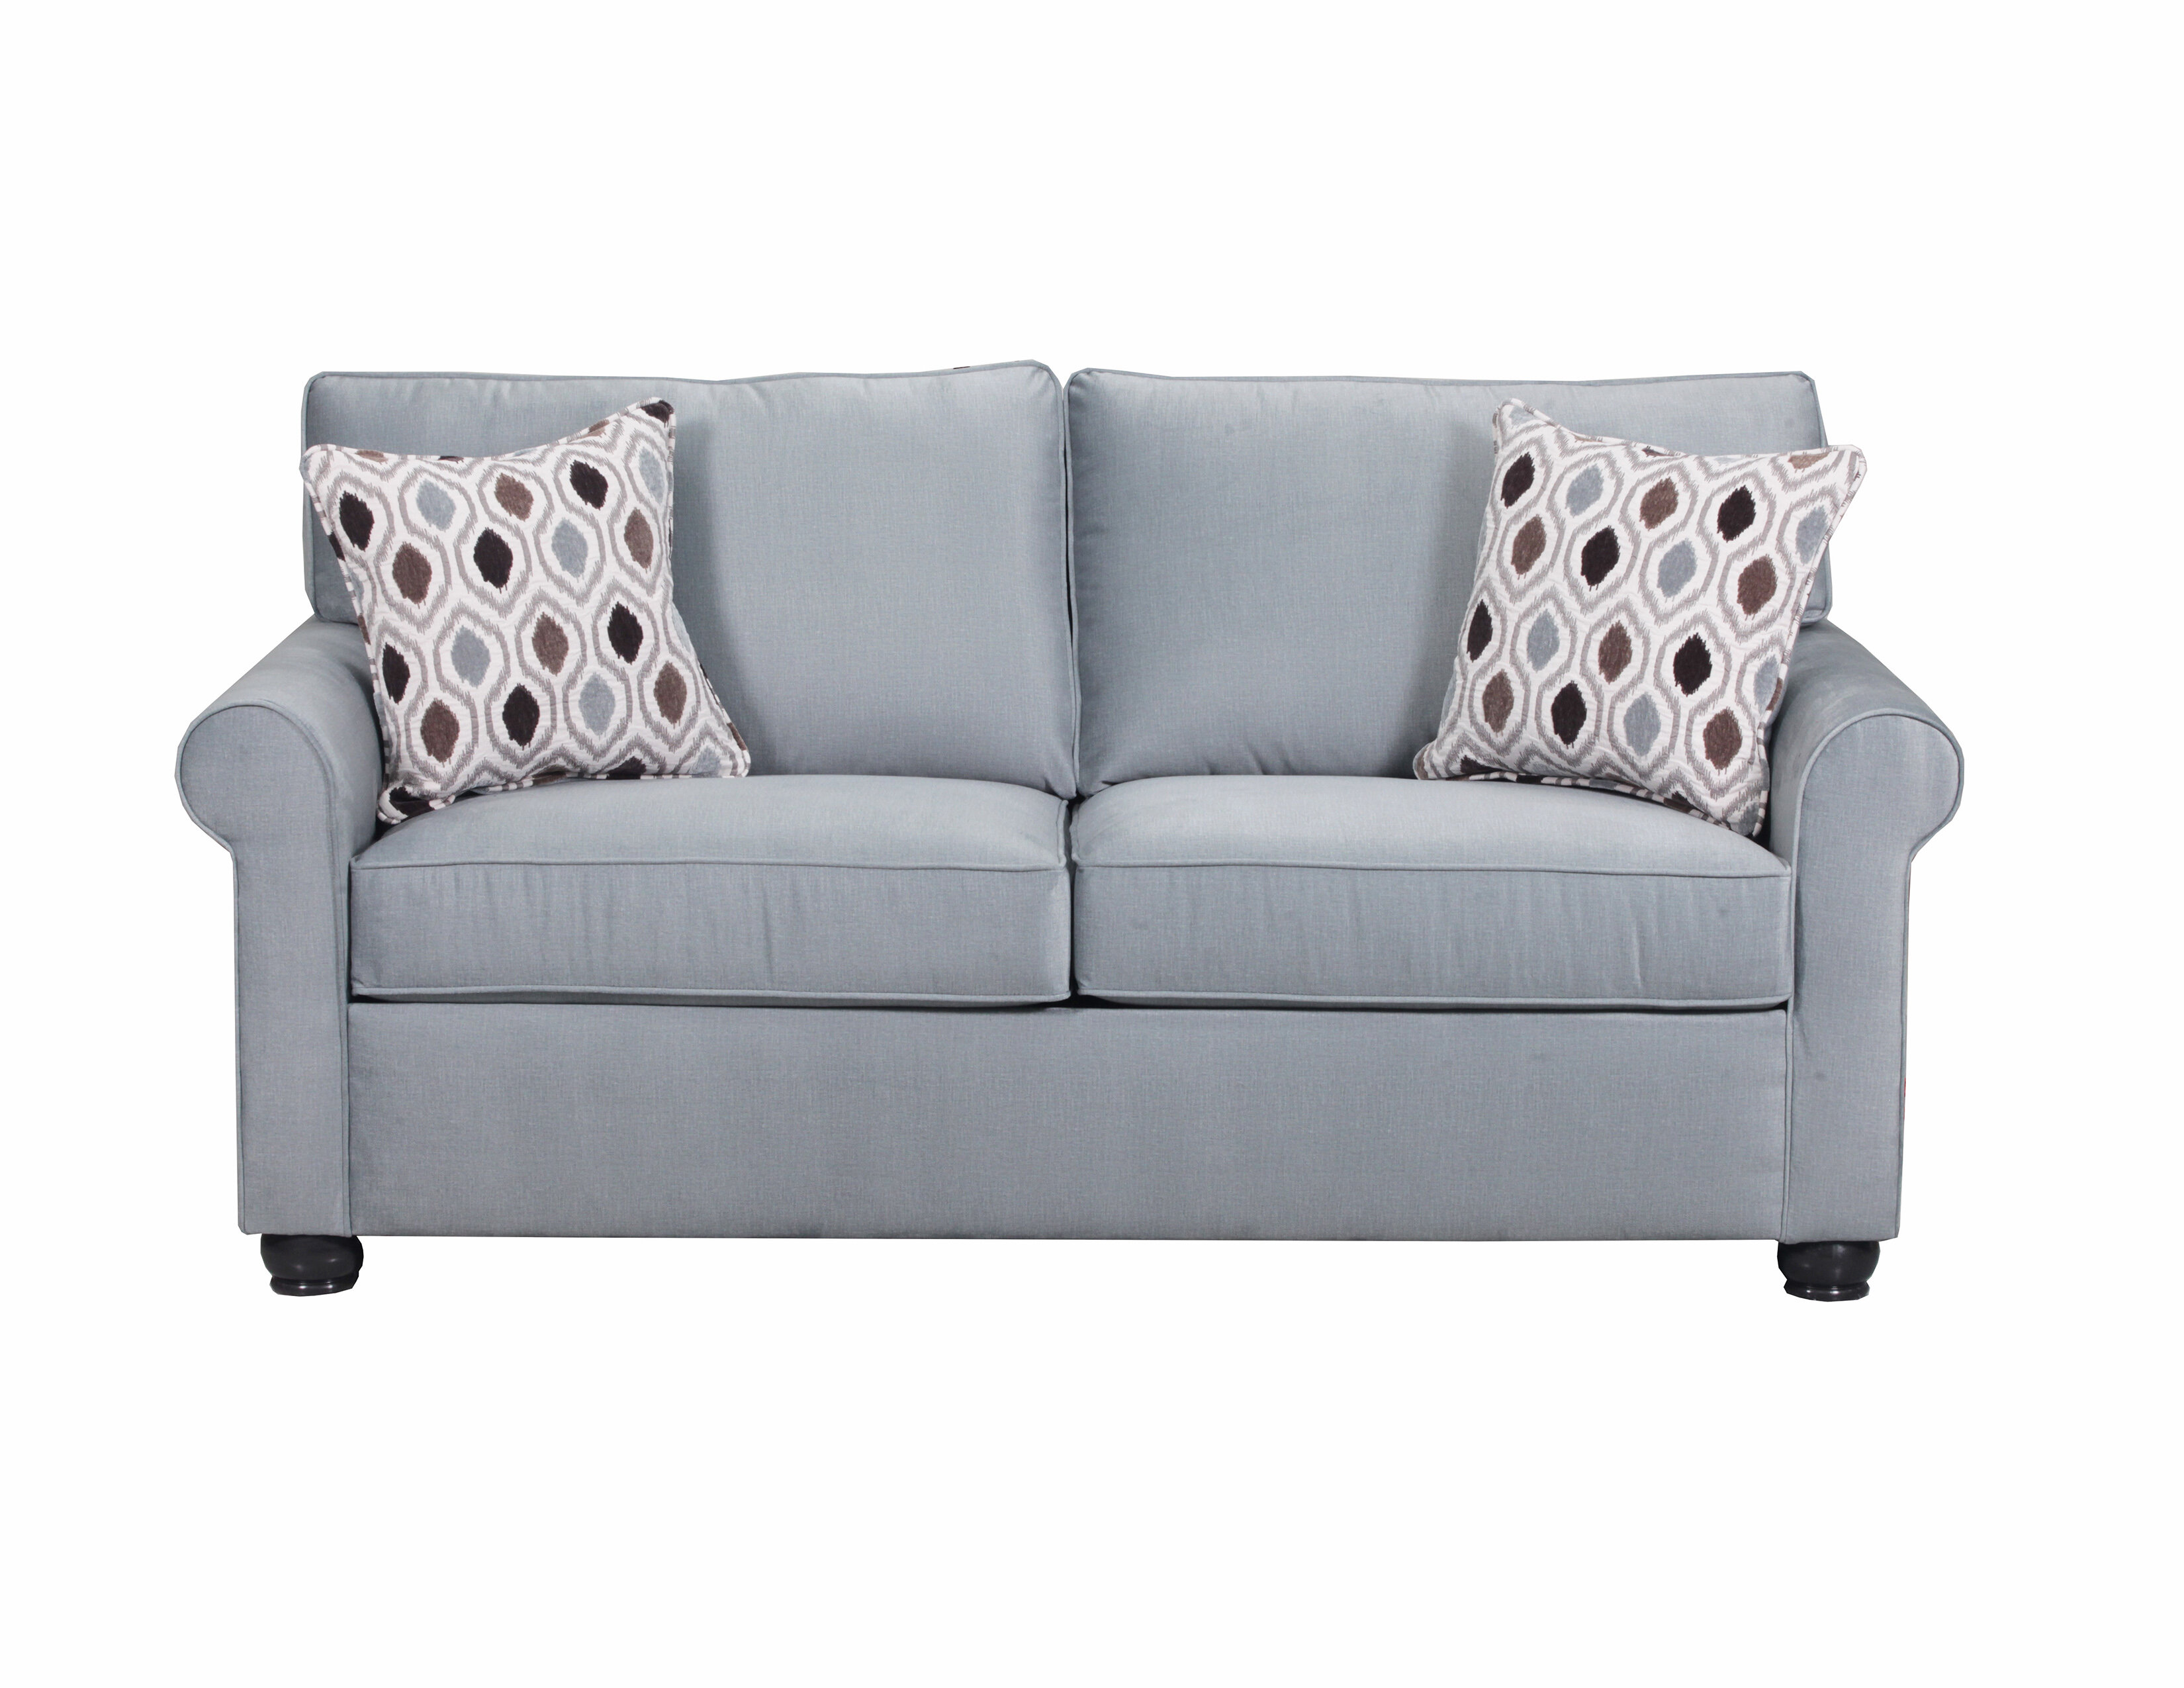 family nh stores flexsteel in harris dana furniture product loveseat chair